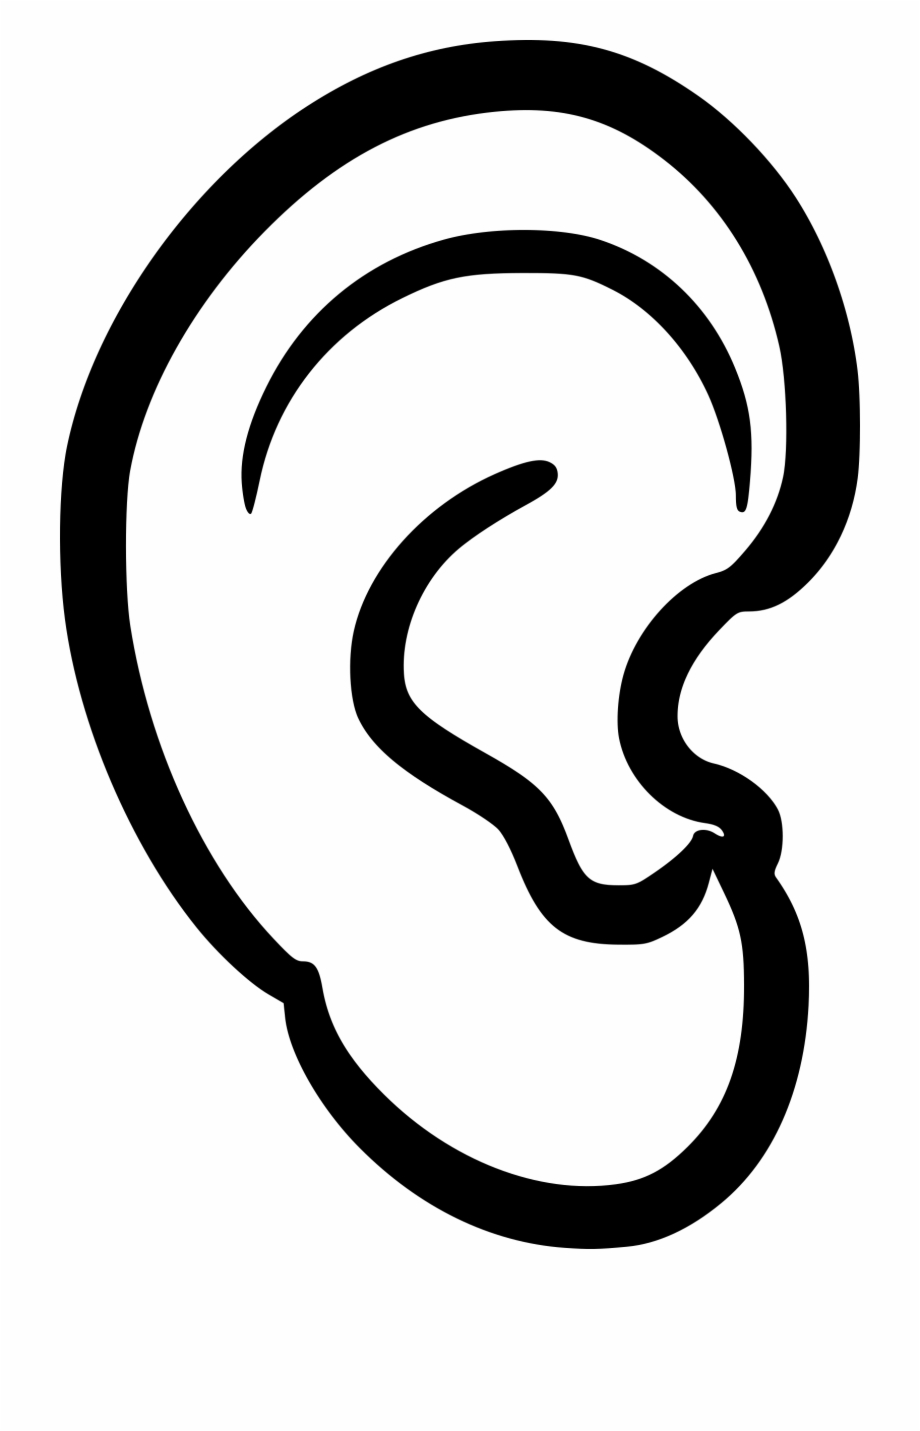 Download High Quality ear clipart black and white.